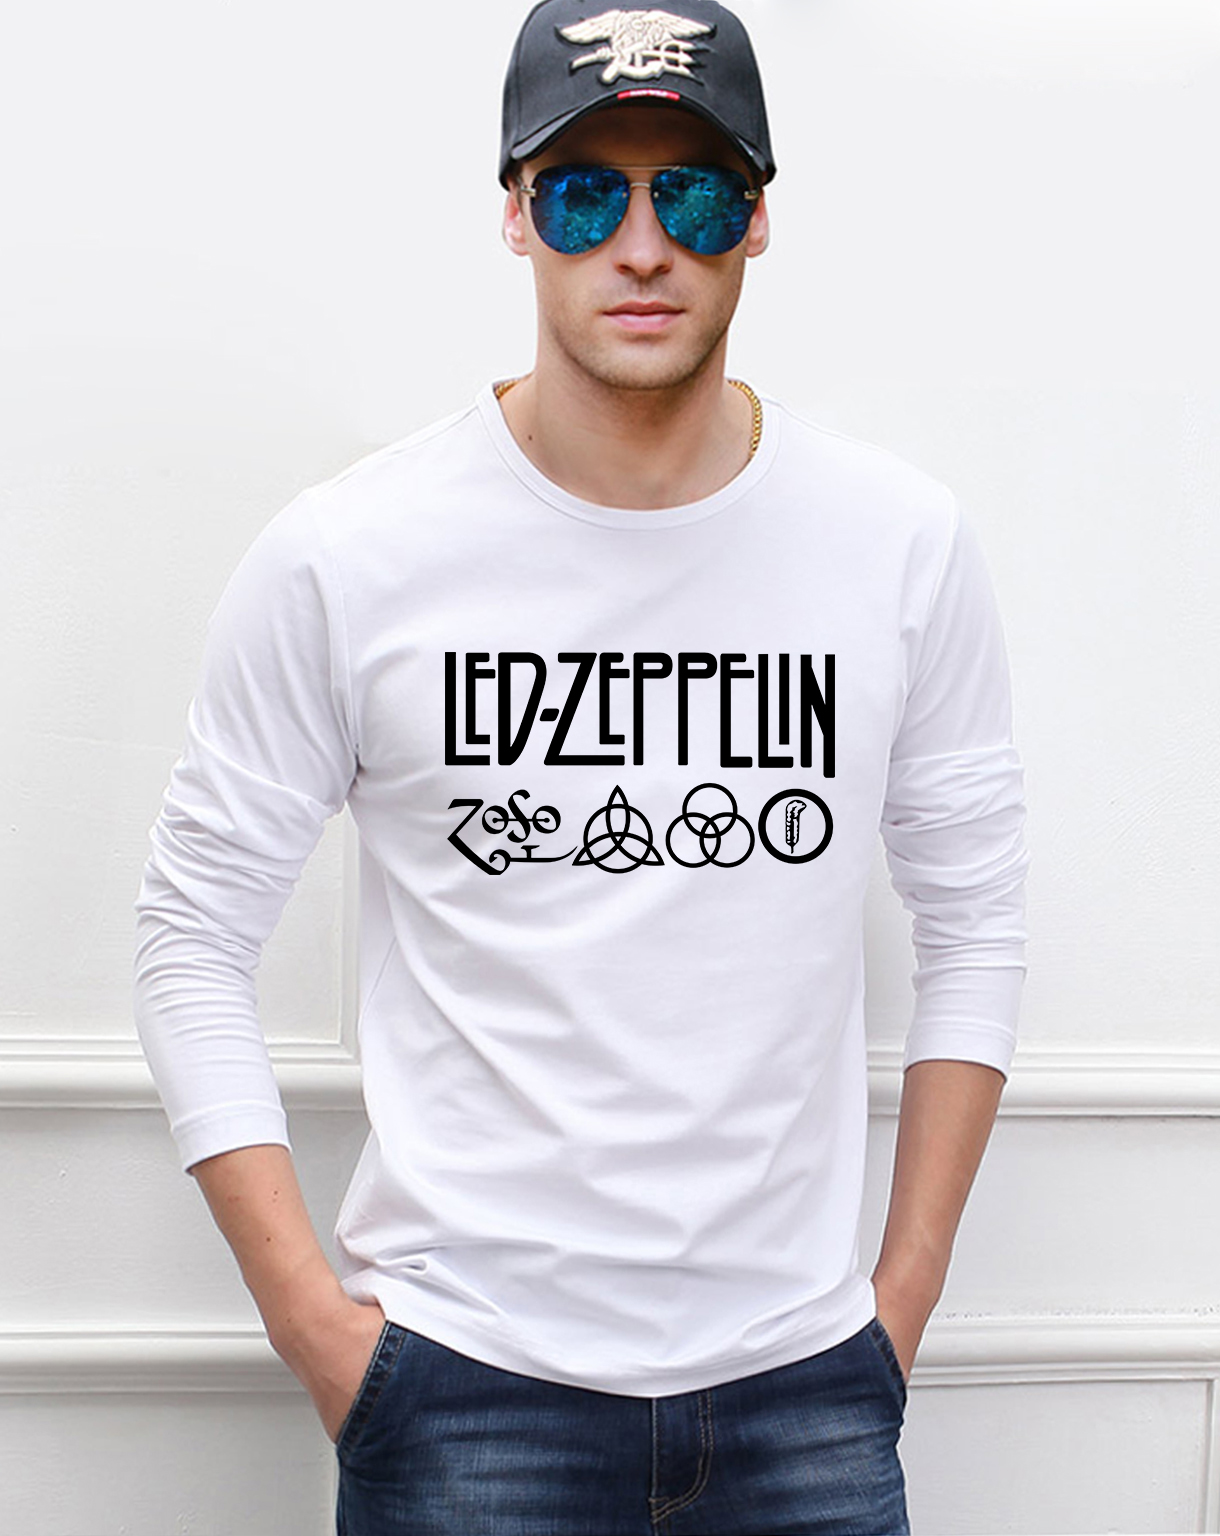 Rock And Roll Music Men's T-Shirts 2019 Summer Autumn Long Sleeve T Shirt Men 100% Cotton Punk Style Tops Tees For Male